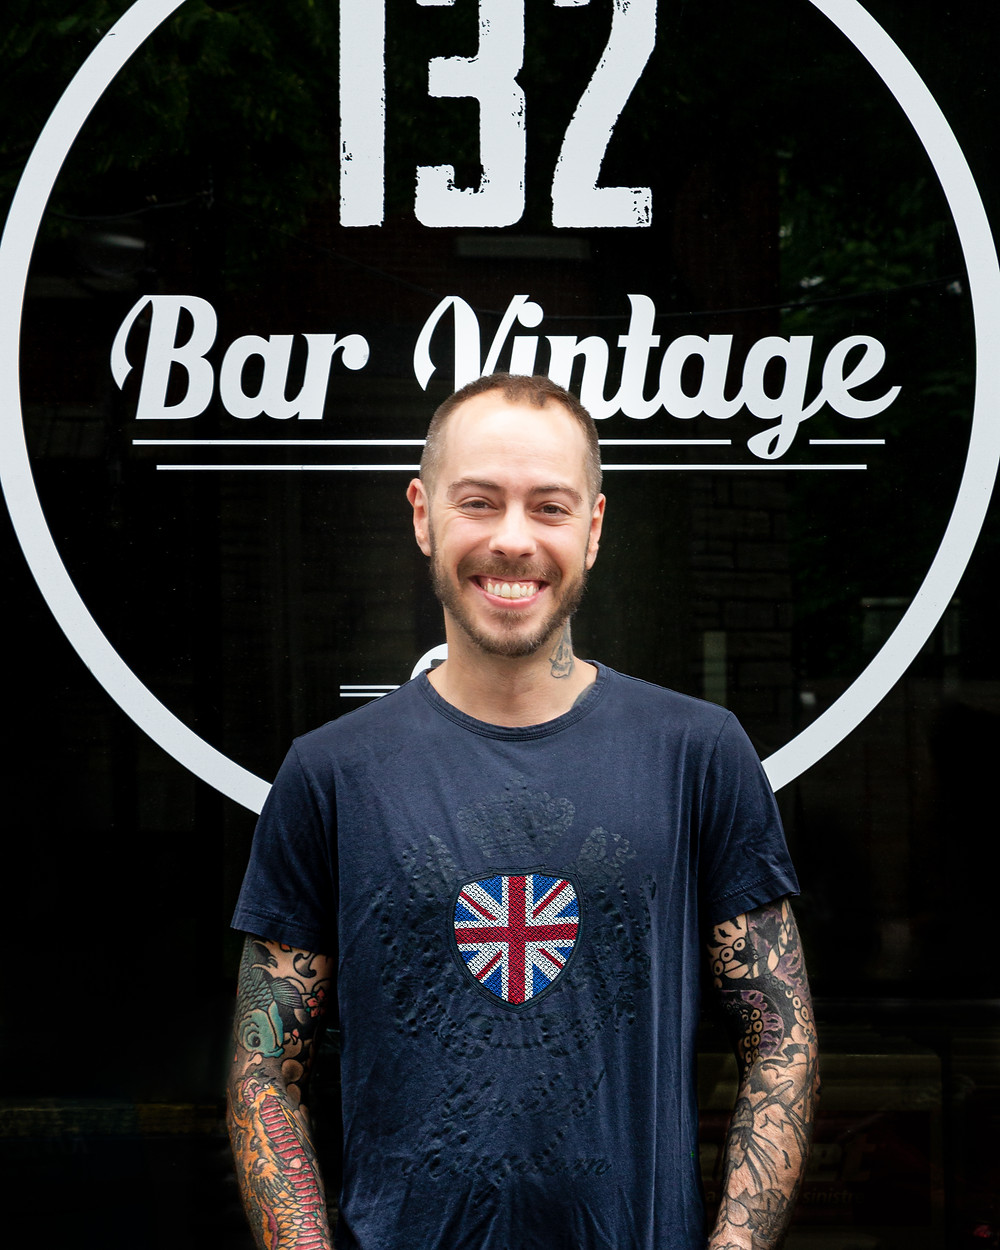 A portrait of Jean-Max Giguere, bar owner of 132 Bar Vintage in Montreal